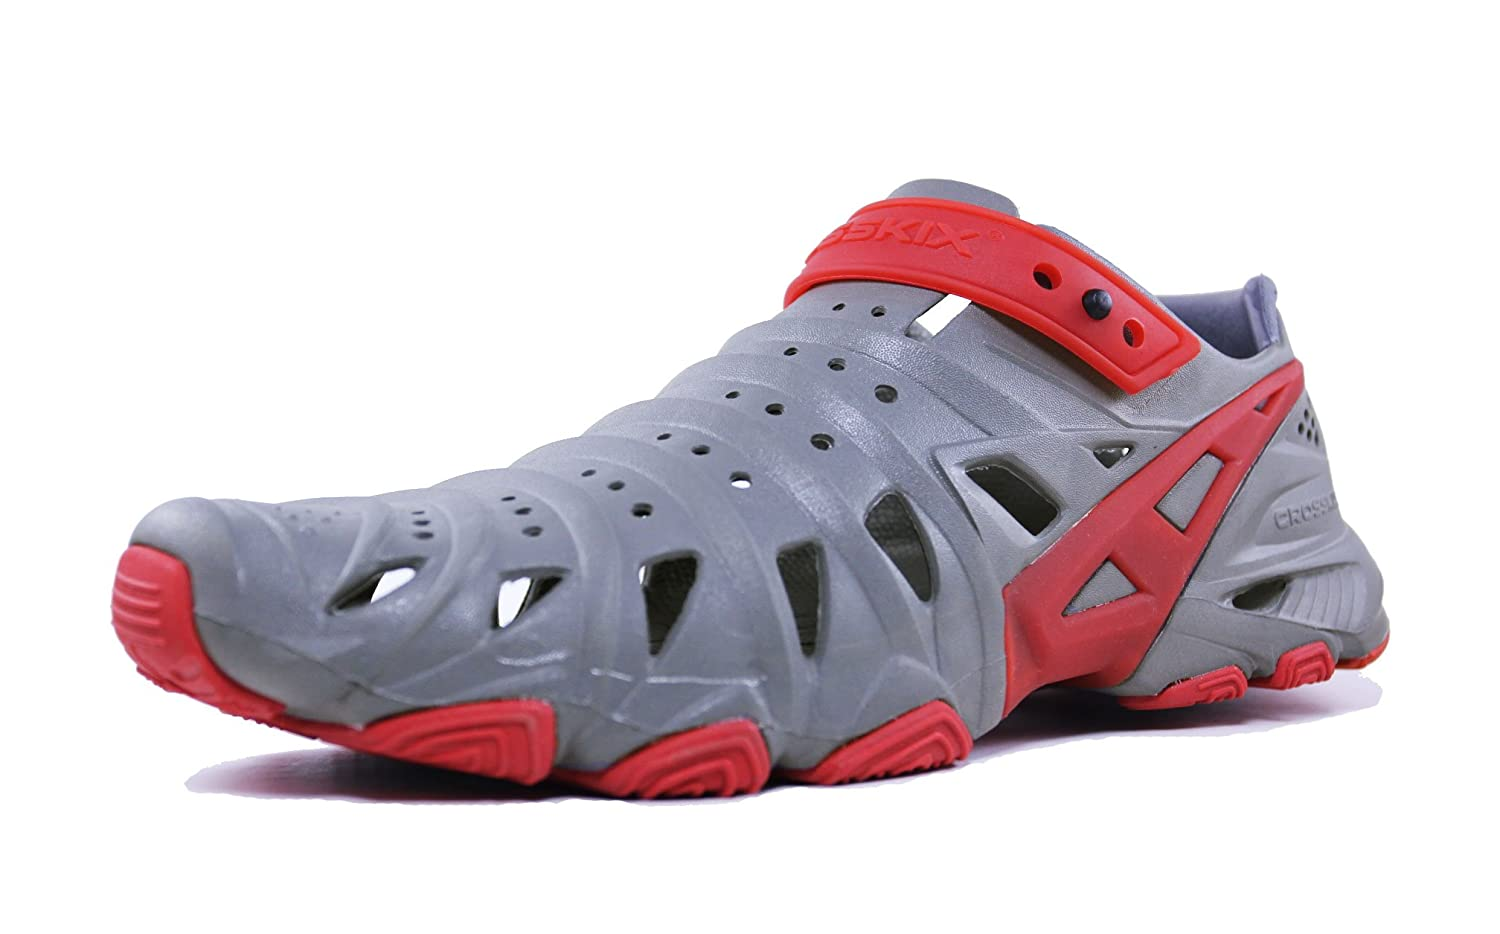 CrossKix 2.0 Athletic Water Shoes - Men & Women B01HE0XFVY M8W10|Red Dawn